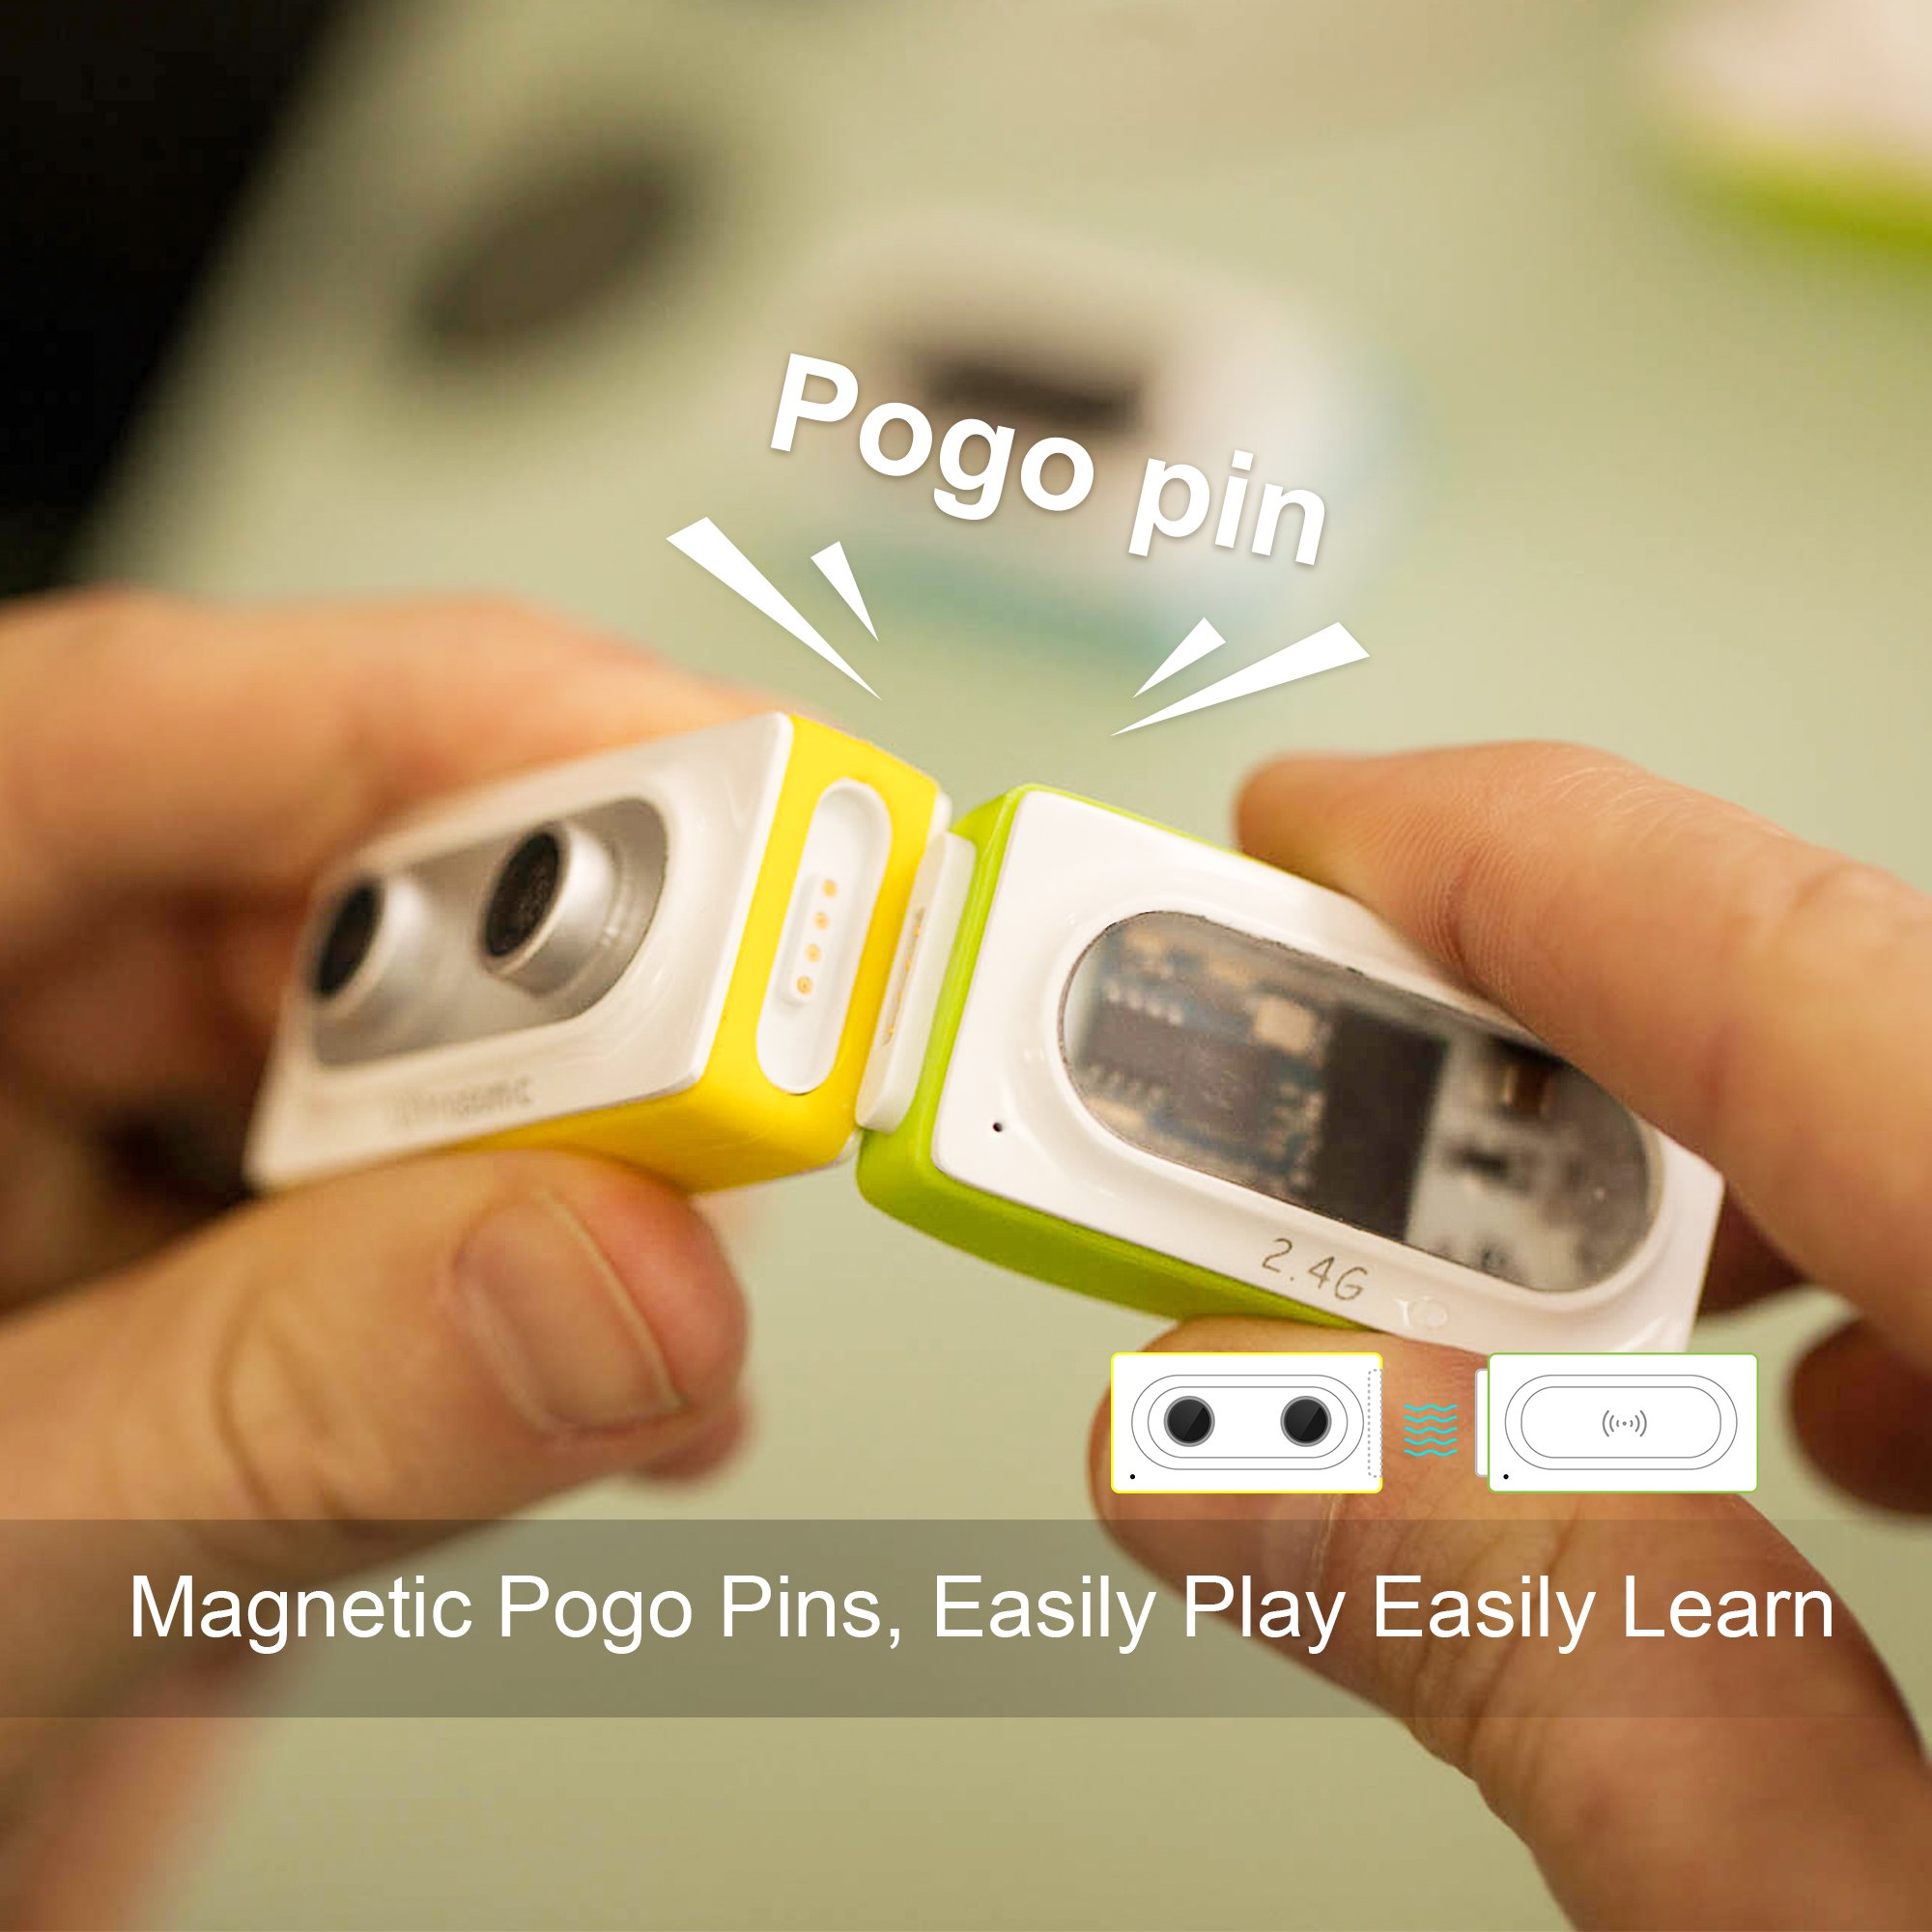 Makeblock Neuron Inventor Kit, STEAM Education, Graphical Programming, Magnetic Pogo Pins for 6 Year & up Kids+ with 6 Basic Blocks, Over 10 Kinds of Funny Robots, Like Rabbit,Dashing Raptor by Makeblock (Image #3)